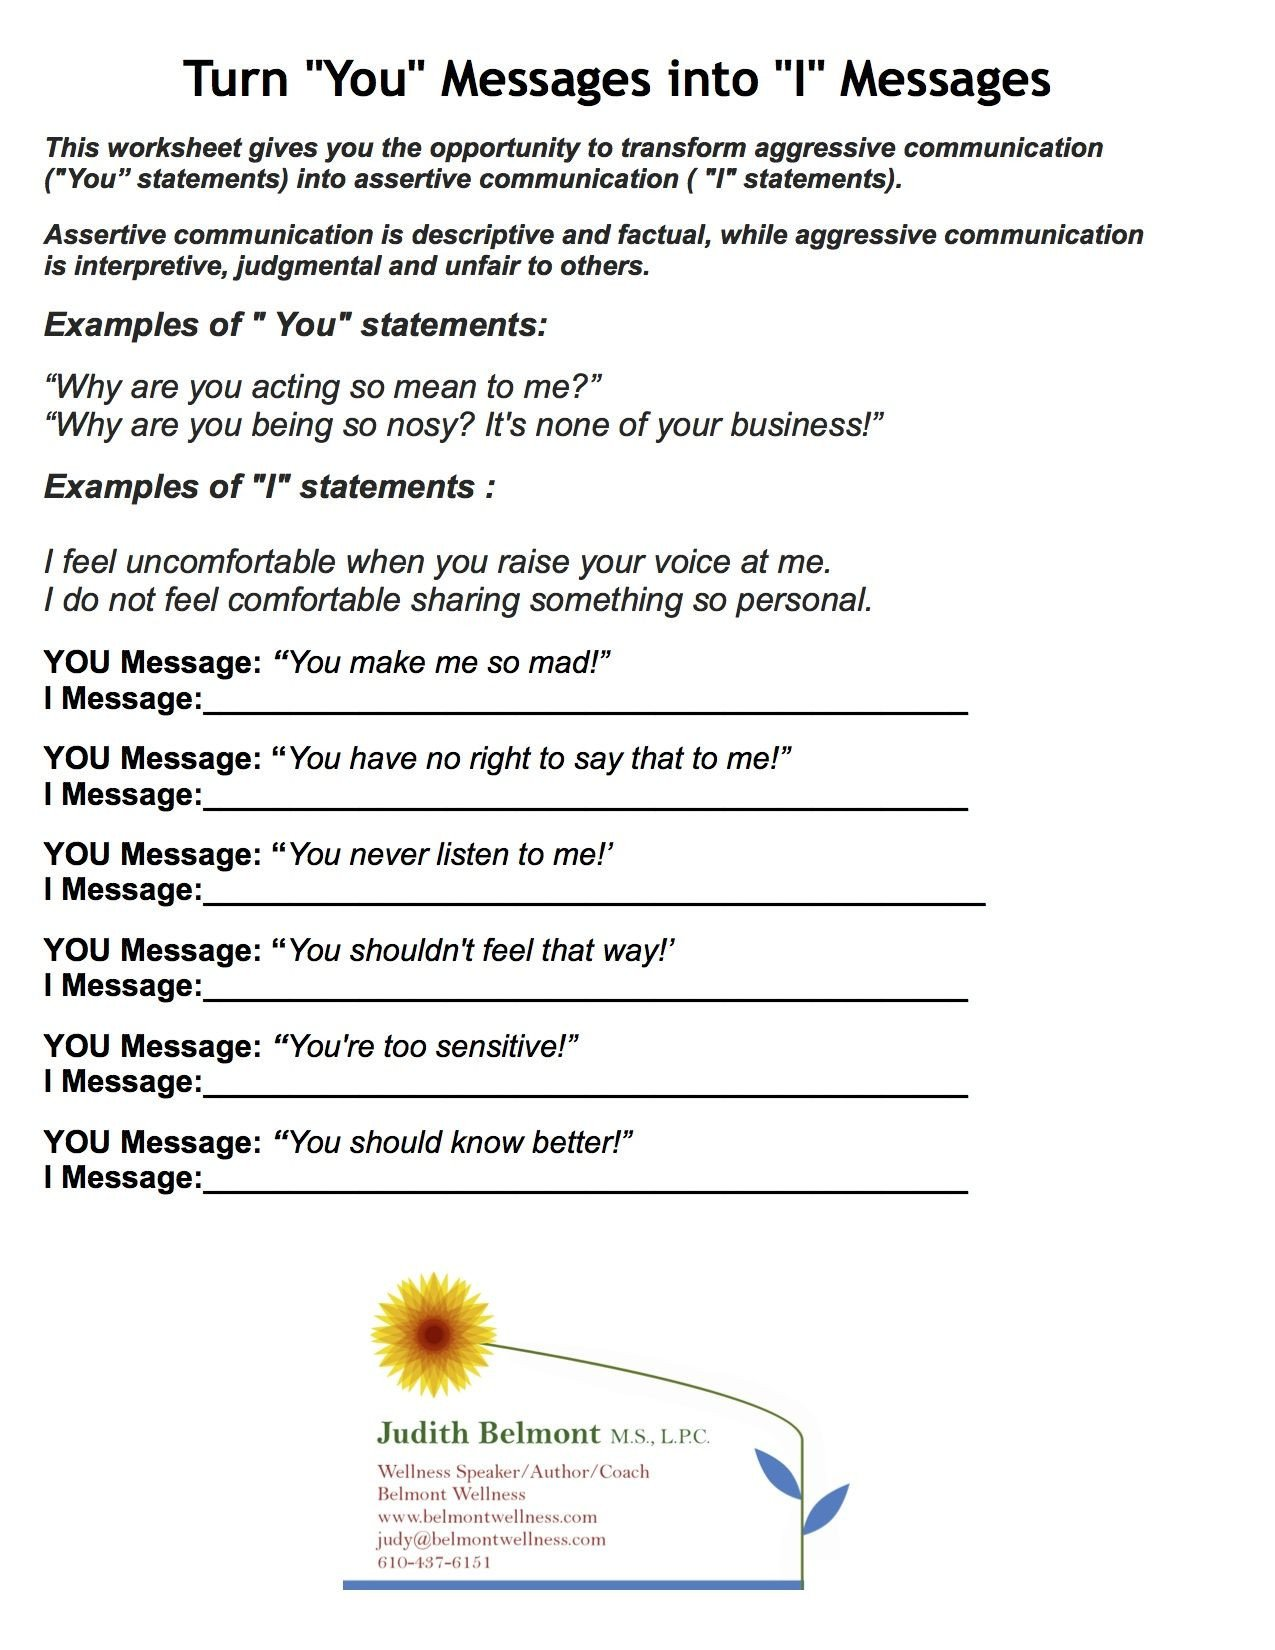 Effective Communication Worksheets Adults Judy Belmont